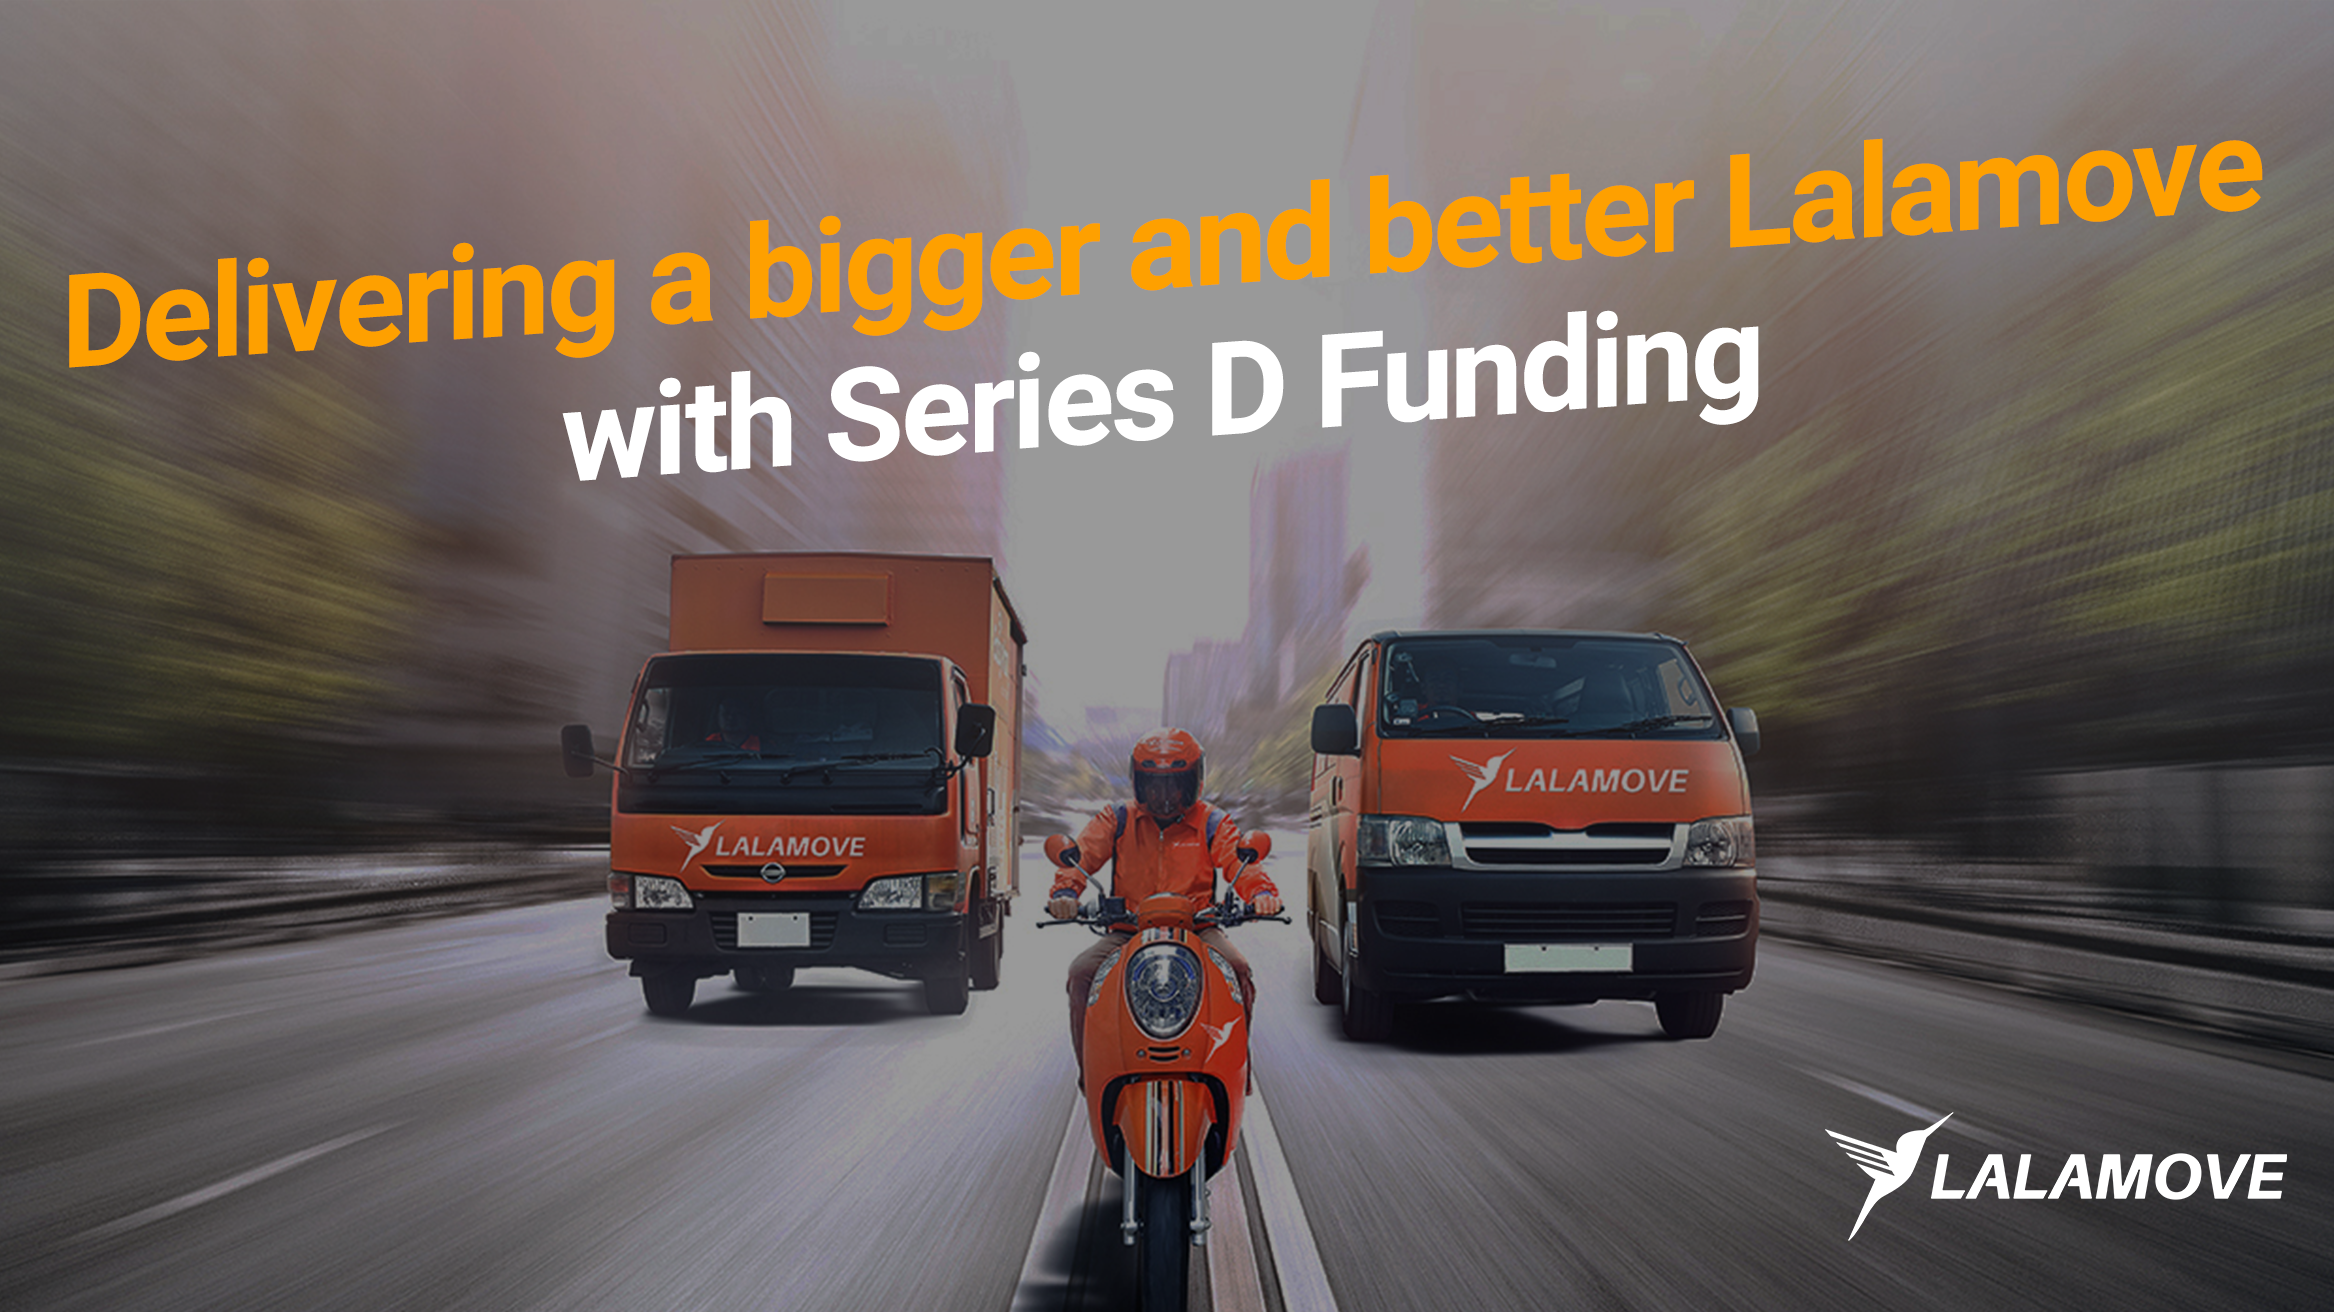 Lalamove raises $300 million in series D funding to expand its delivery coverage in Asia